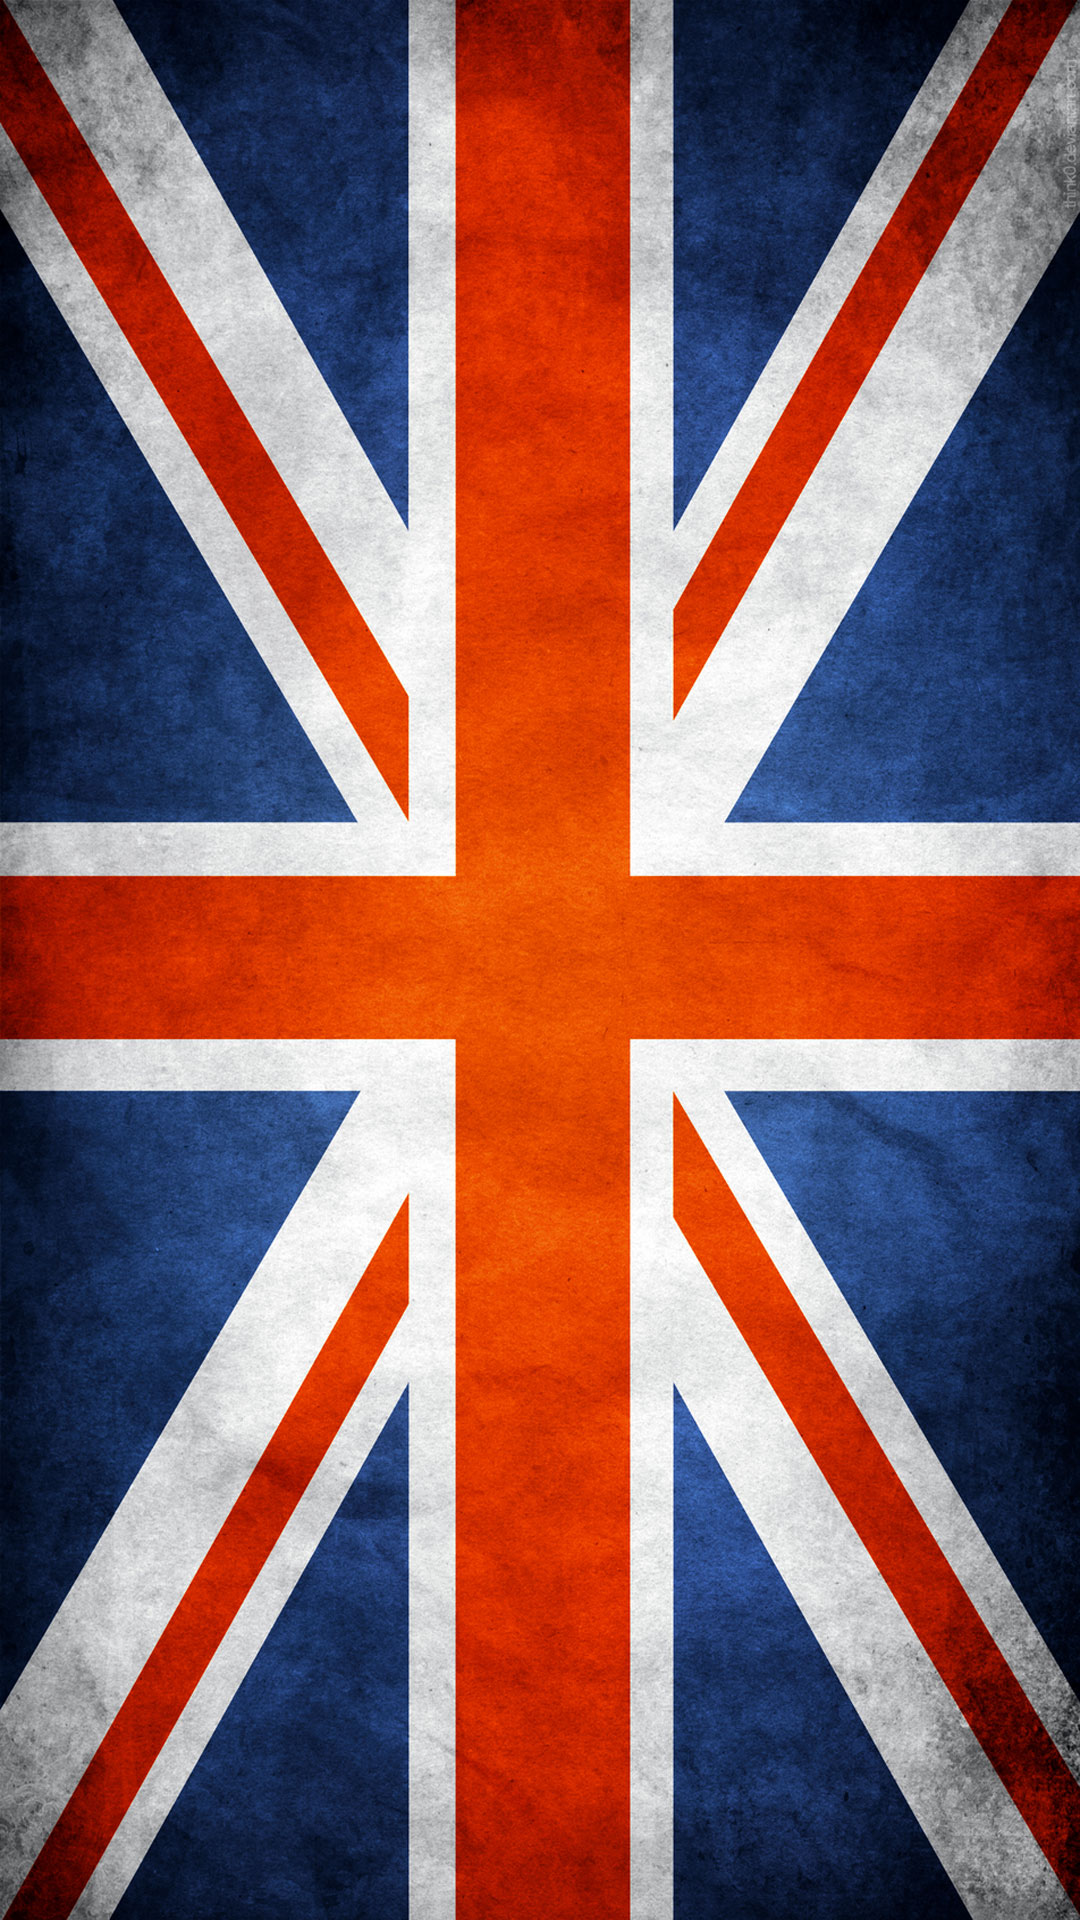 England Flag Wallpaper For Iphone Images amp Pictures   Becuo 1080x1920